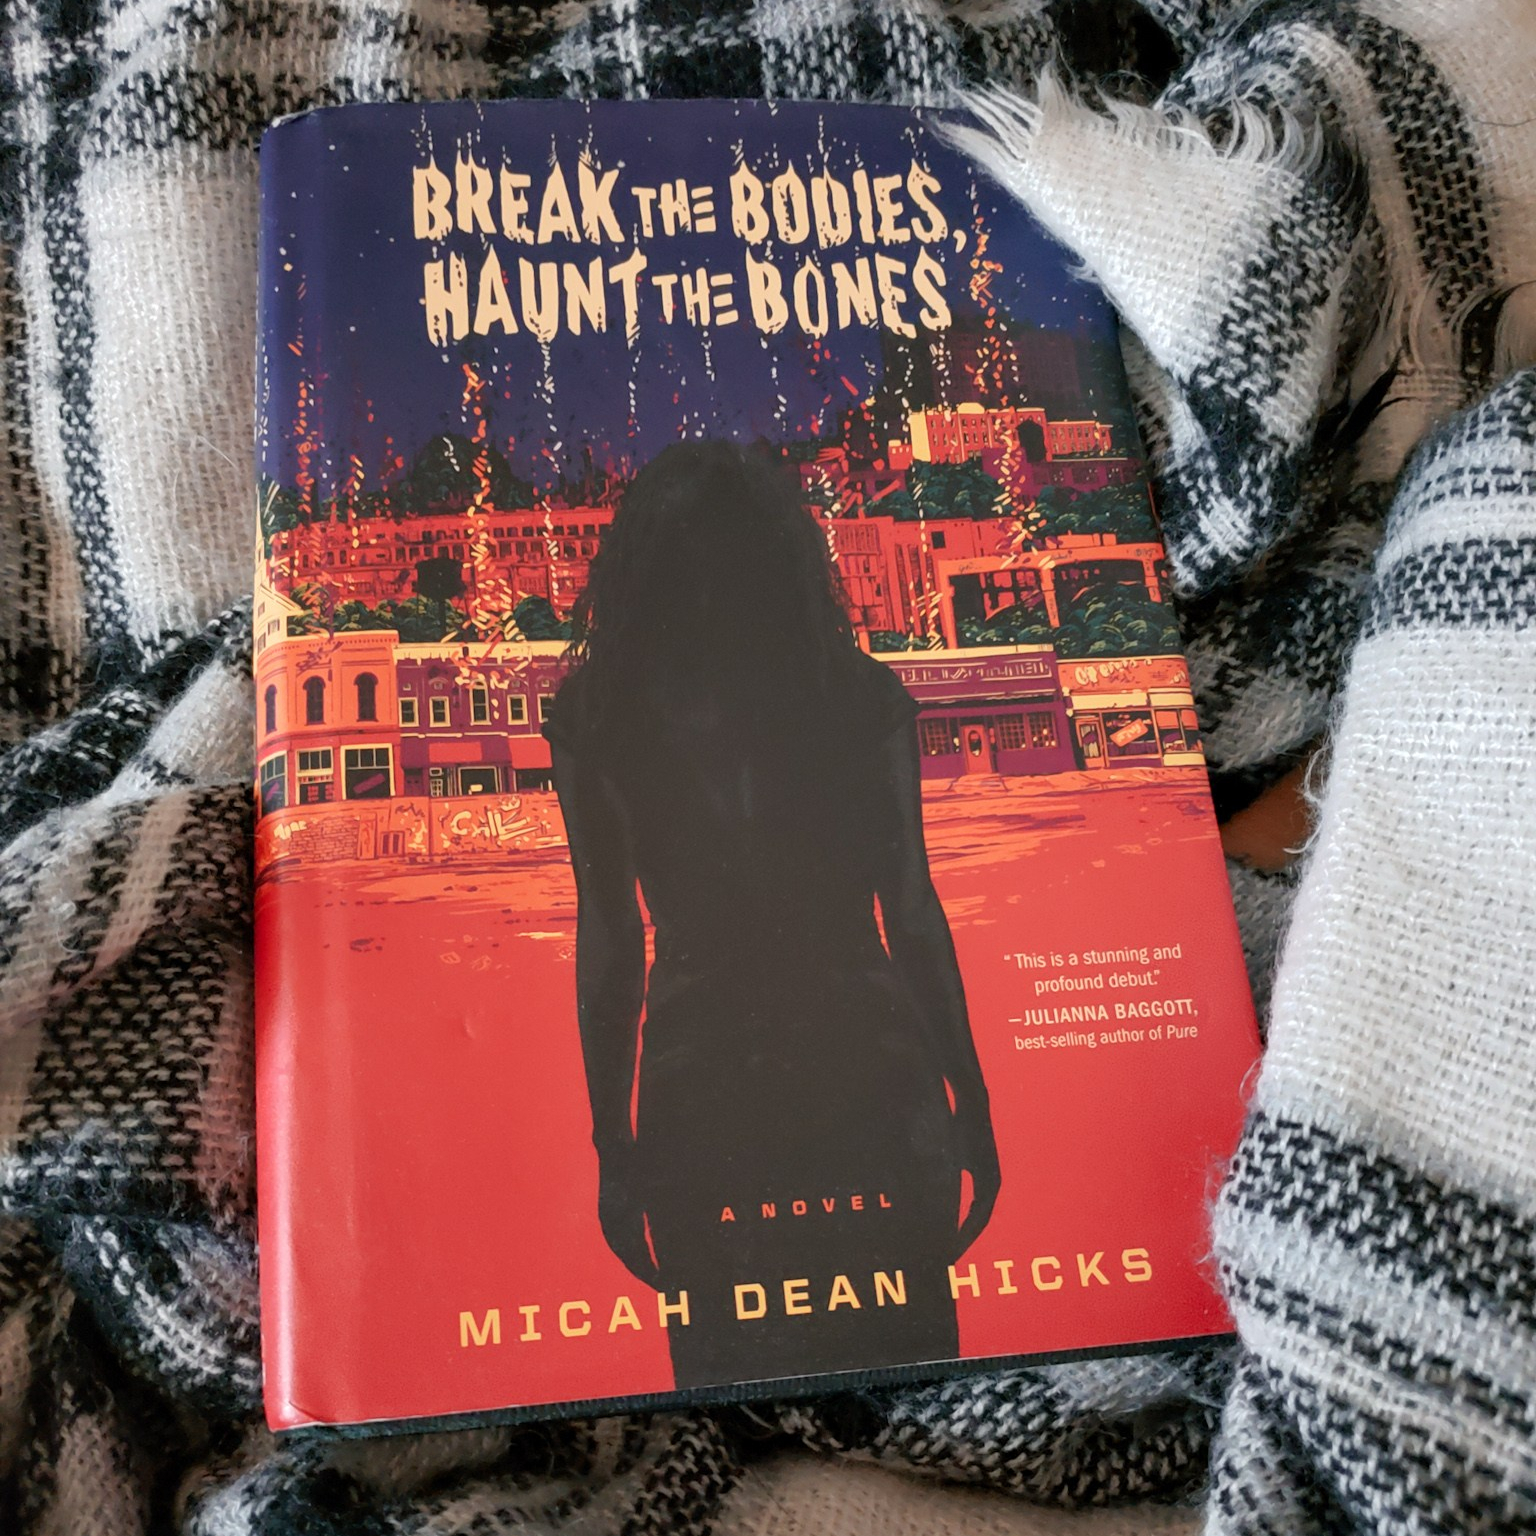 A photo of my copy of Break the Bodies, Haunt the Bones by Micah Dean Hicks.